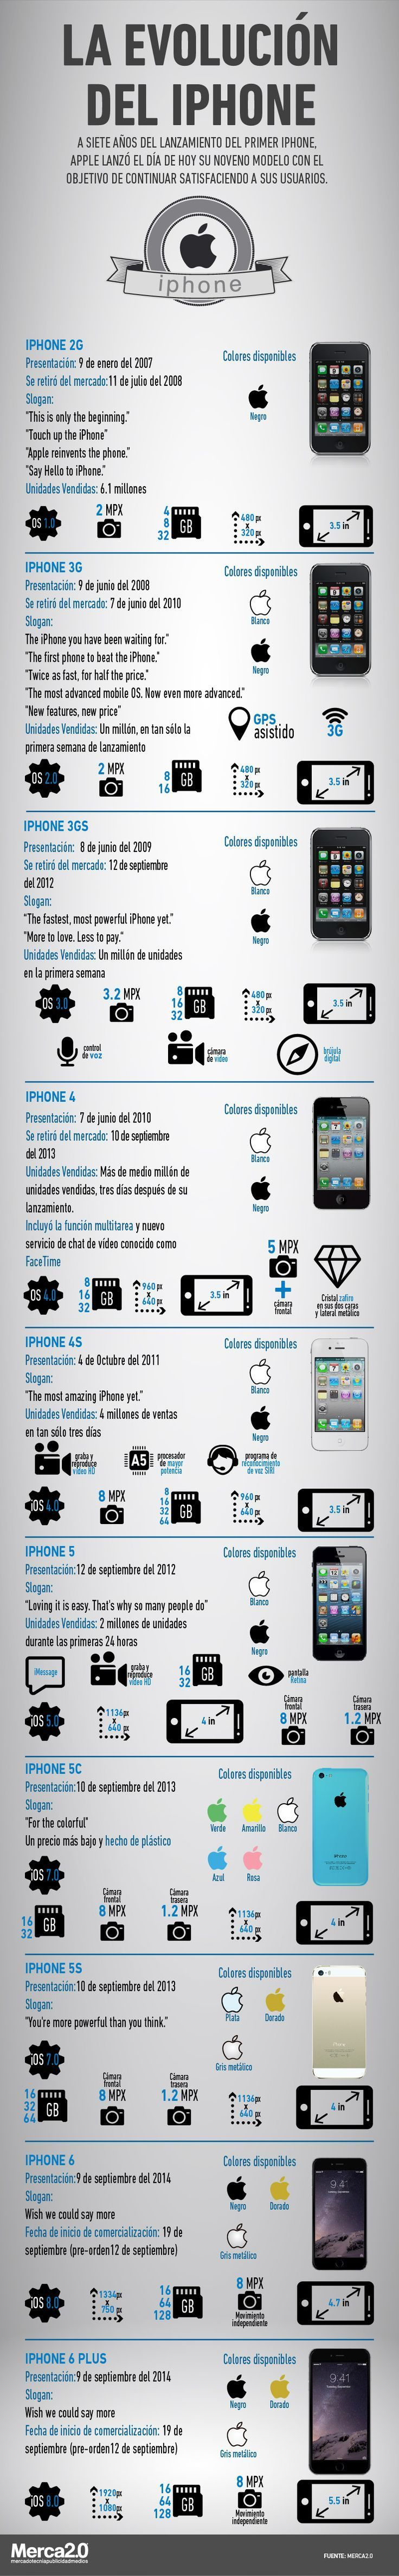 Evolución del iPhone. Del iPhone 1 al iPhone 6 y Iphone 6 plus #infografía #iphone6 #iphone6plus